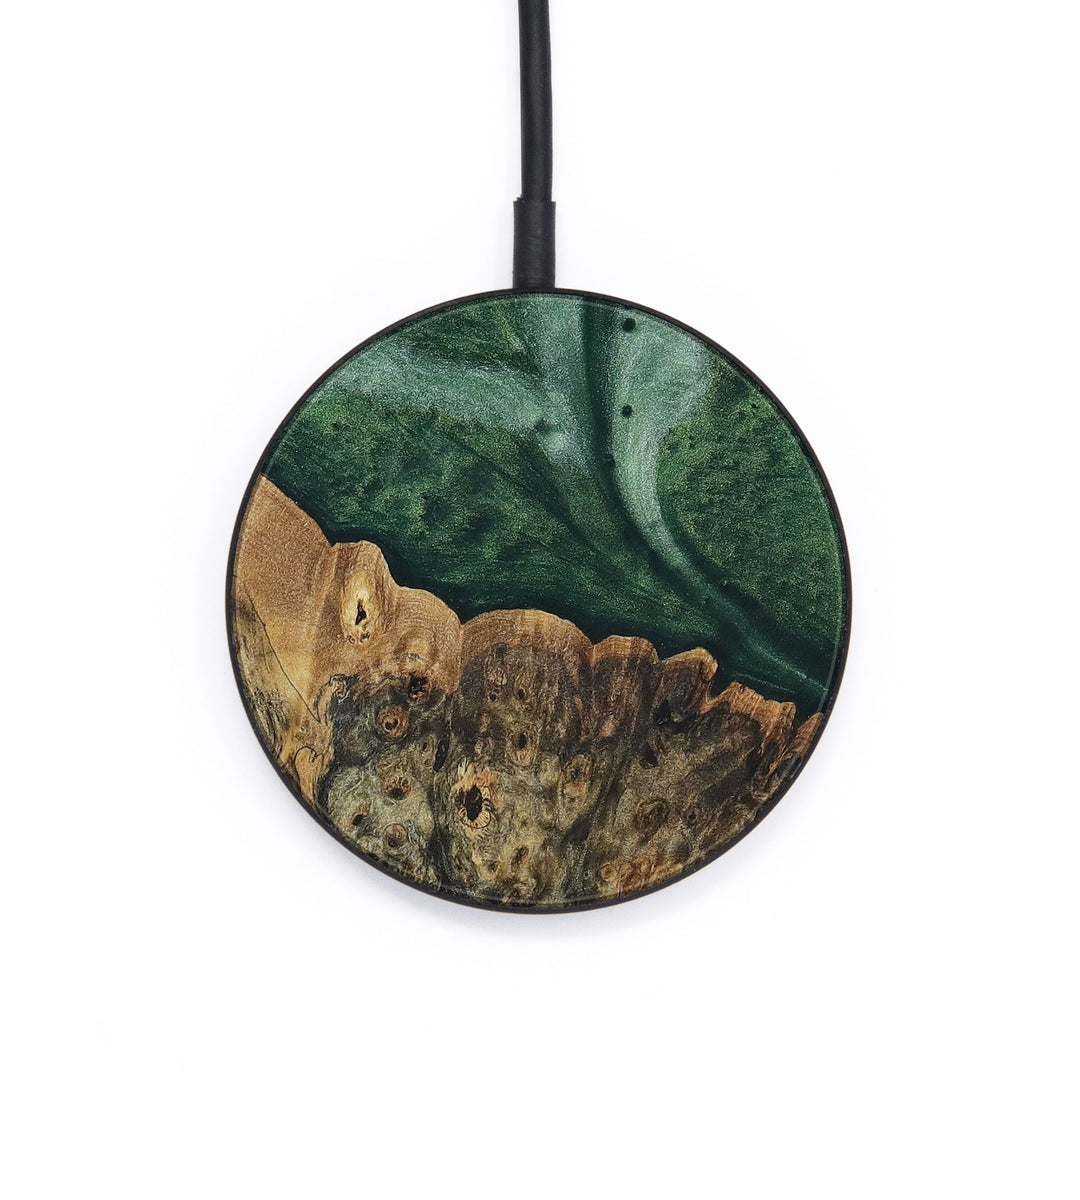 Circle Wood+Resin Wireless Charger - Martine (Dark Green, 402653)